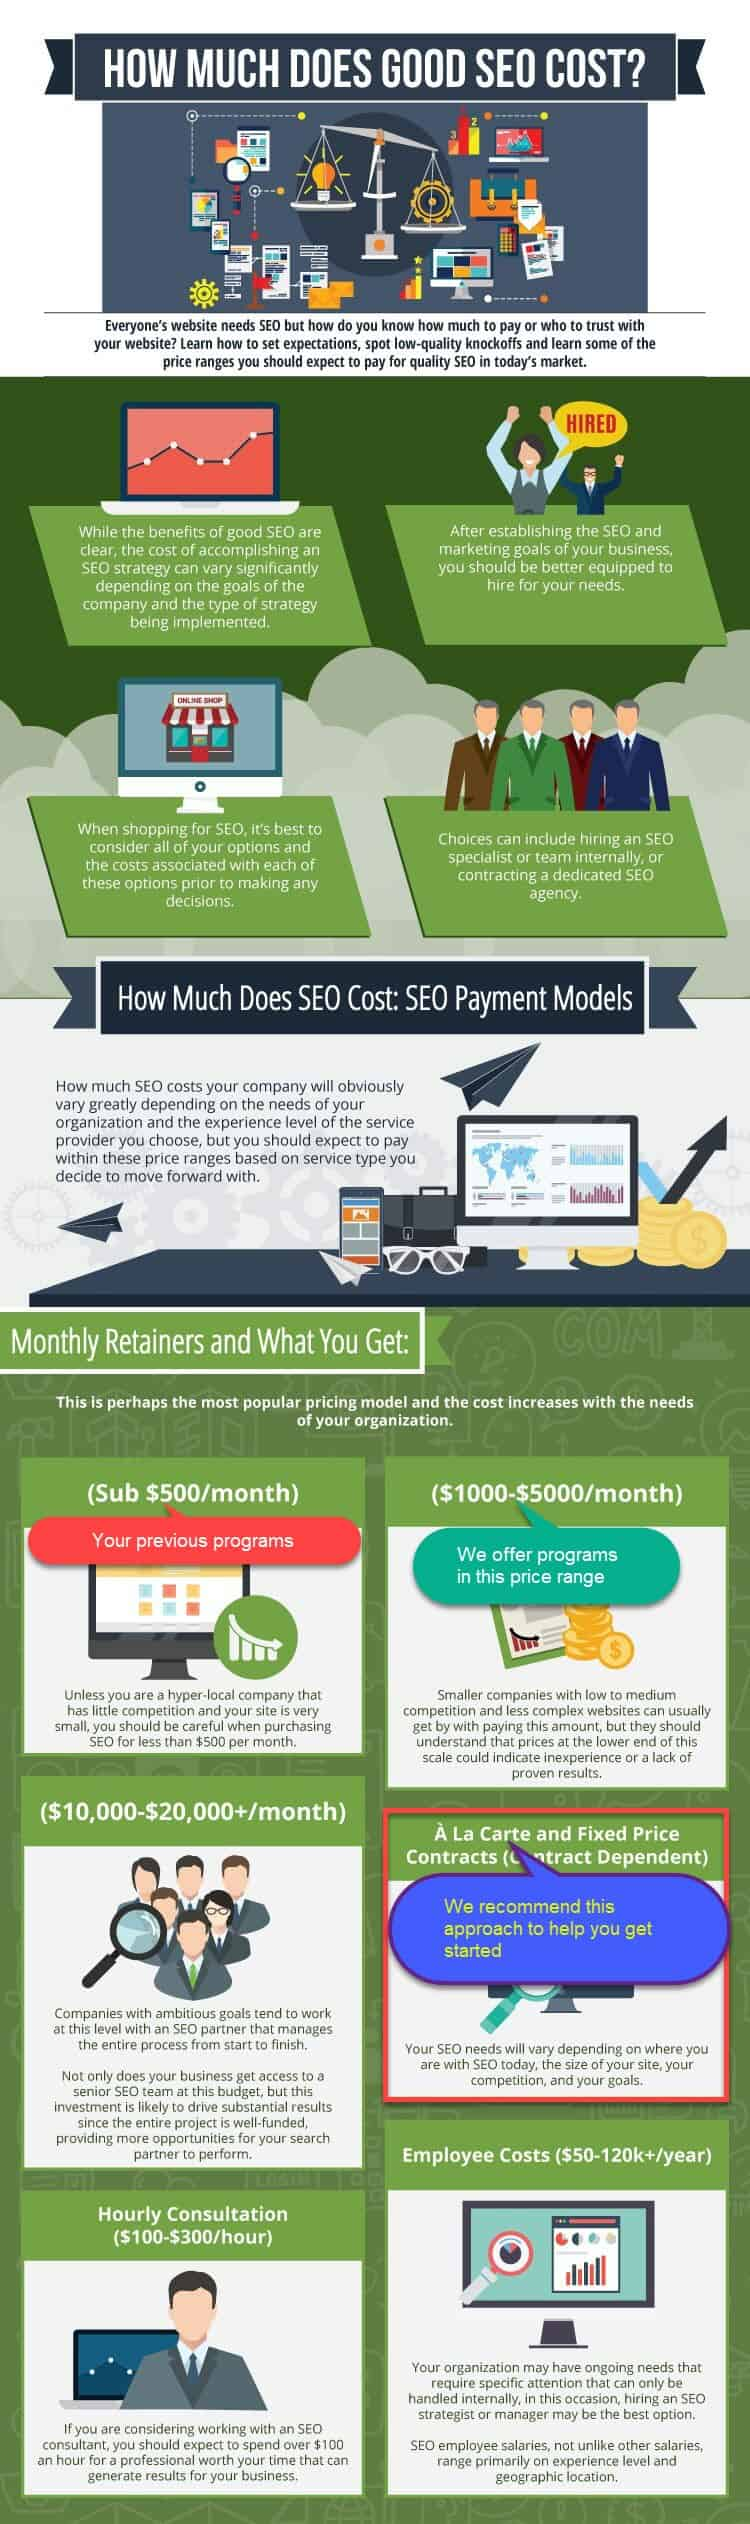 SEO pricing models from Vancouver WA SEO